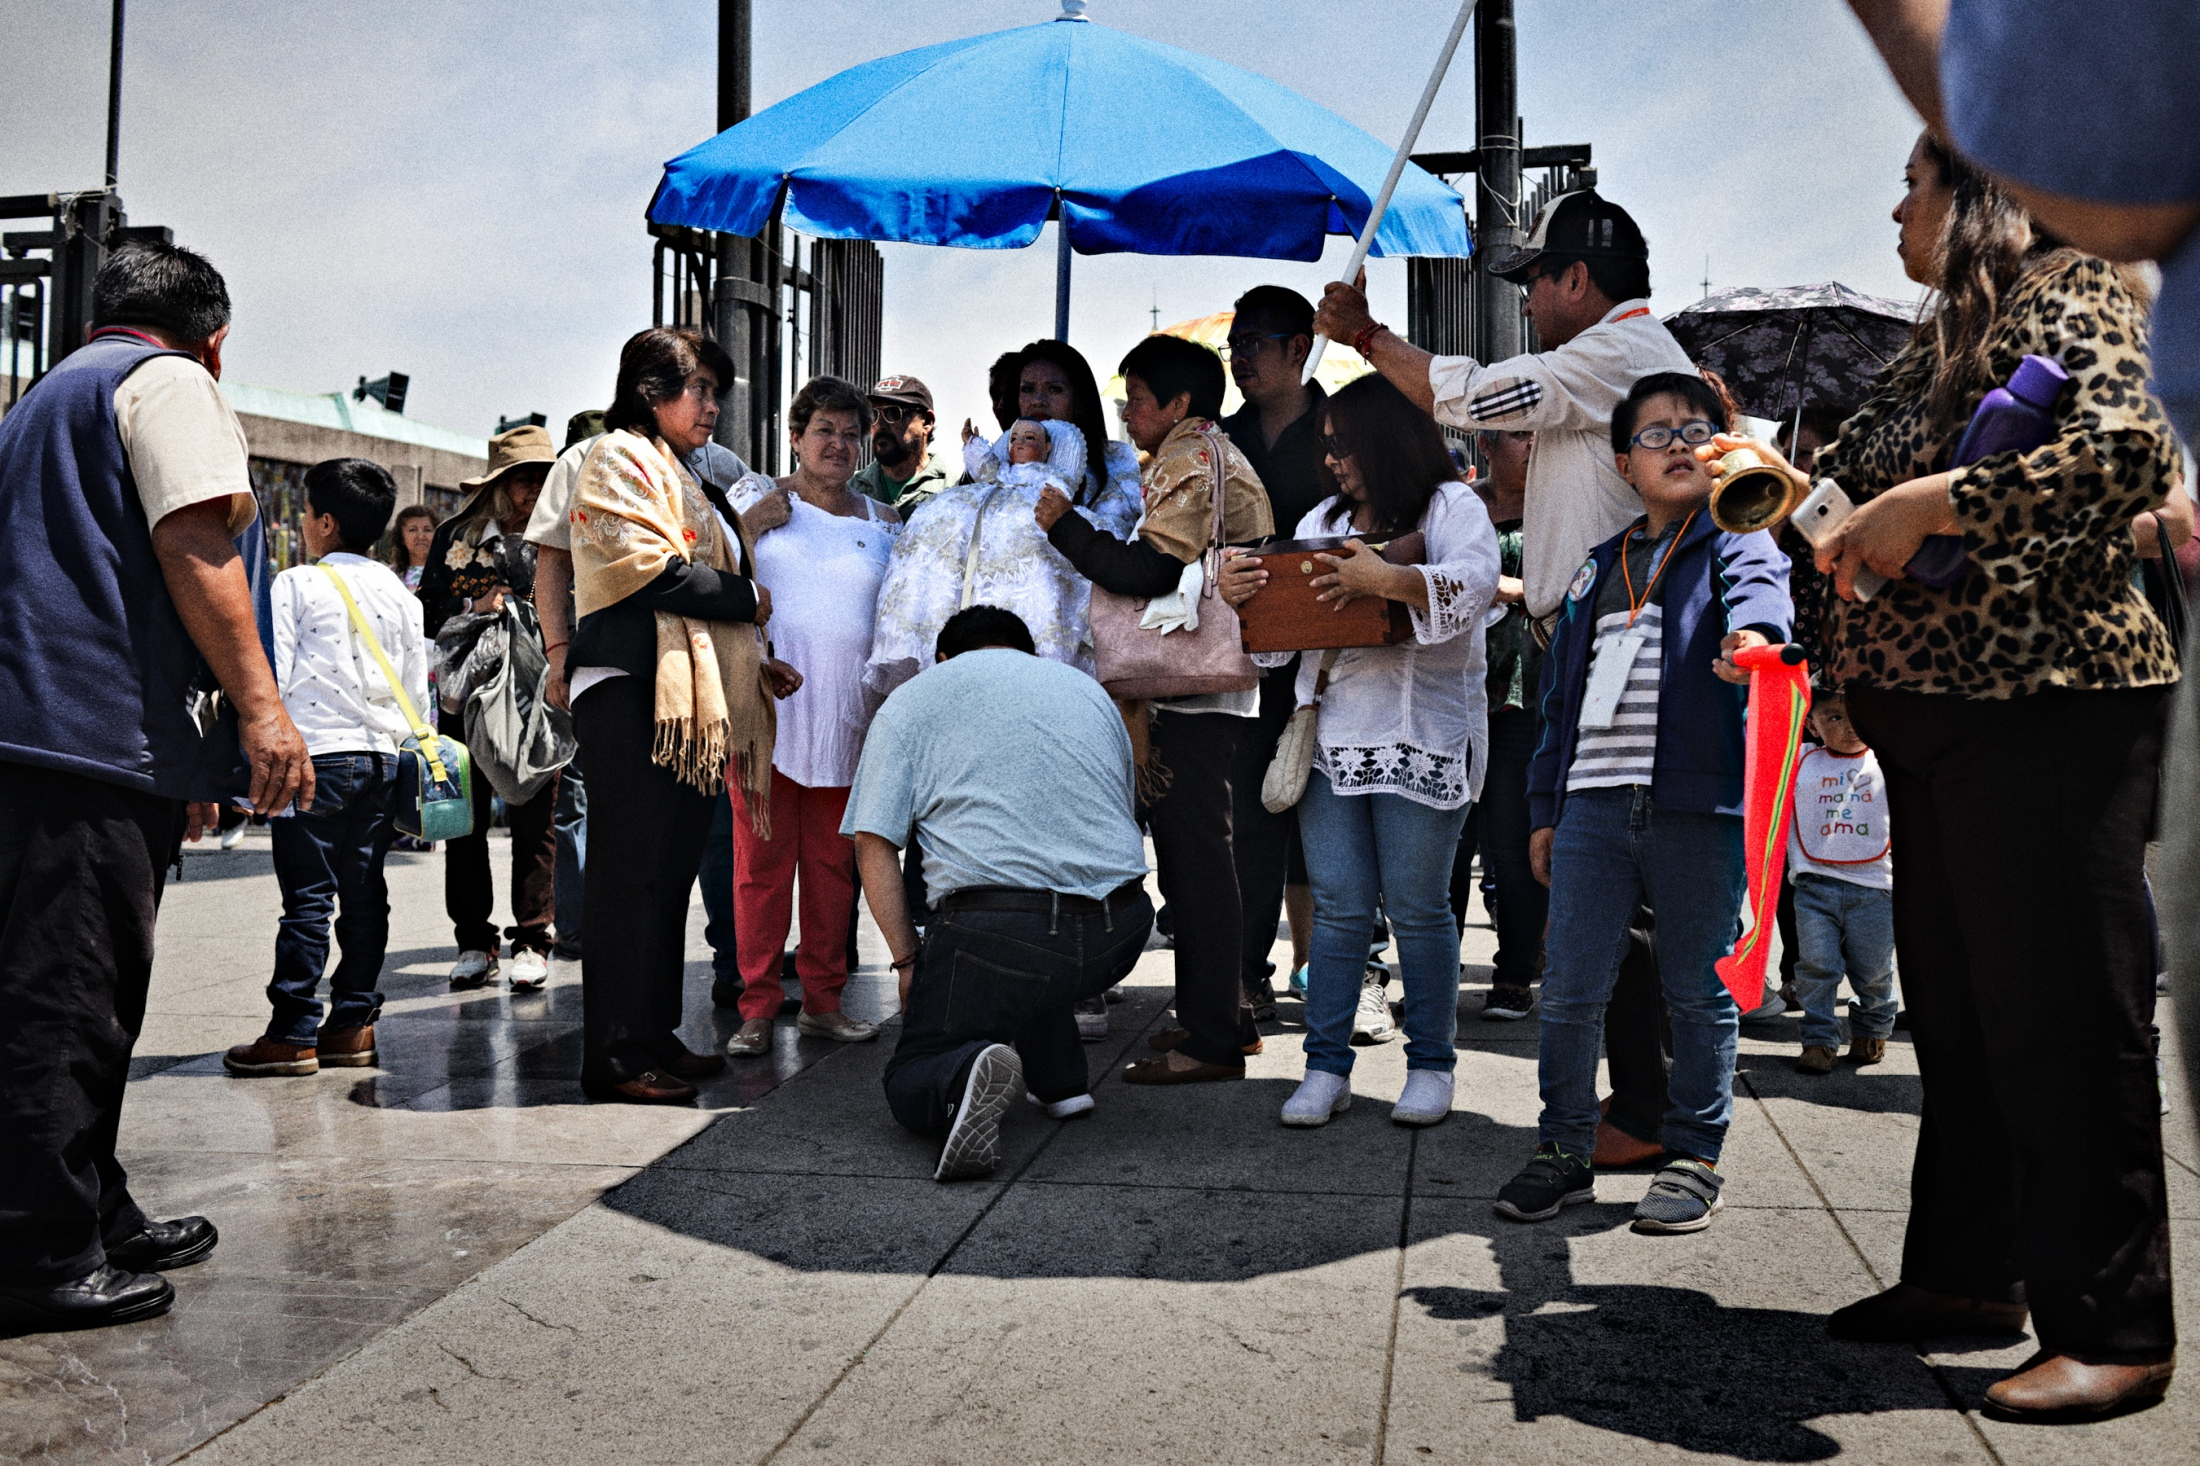 After attending mass at the Basilica of Our Lady of Guadalupe, Niñopa is met by worshipers who pay their respect.